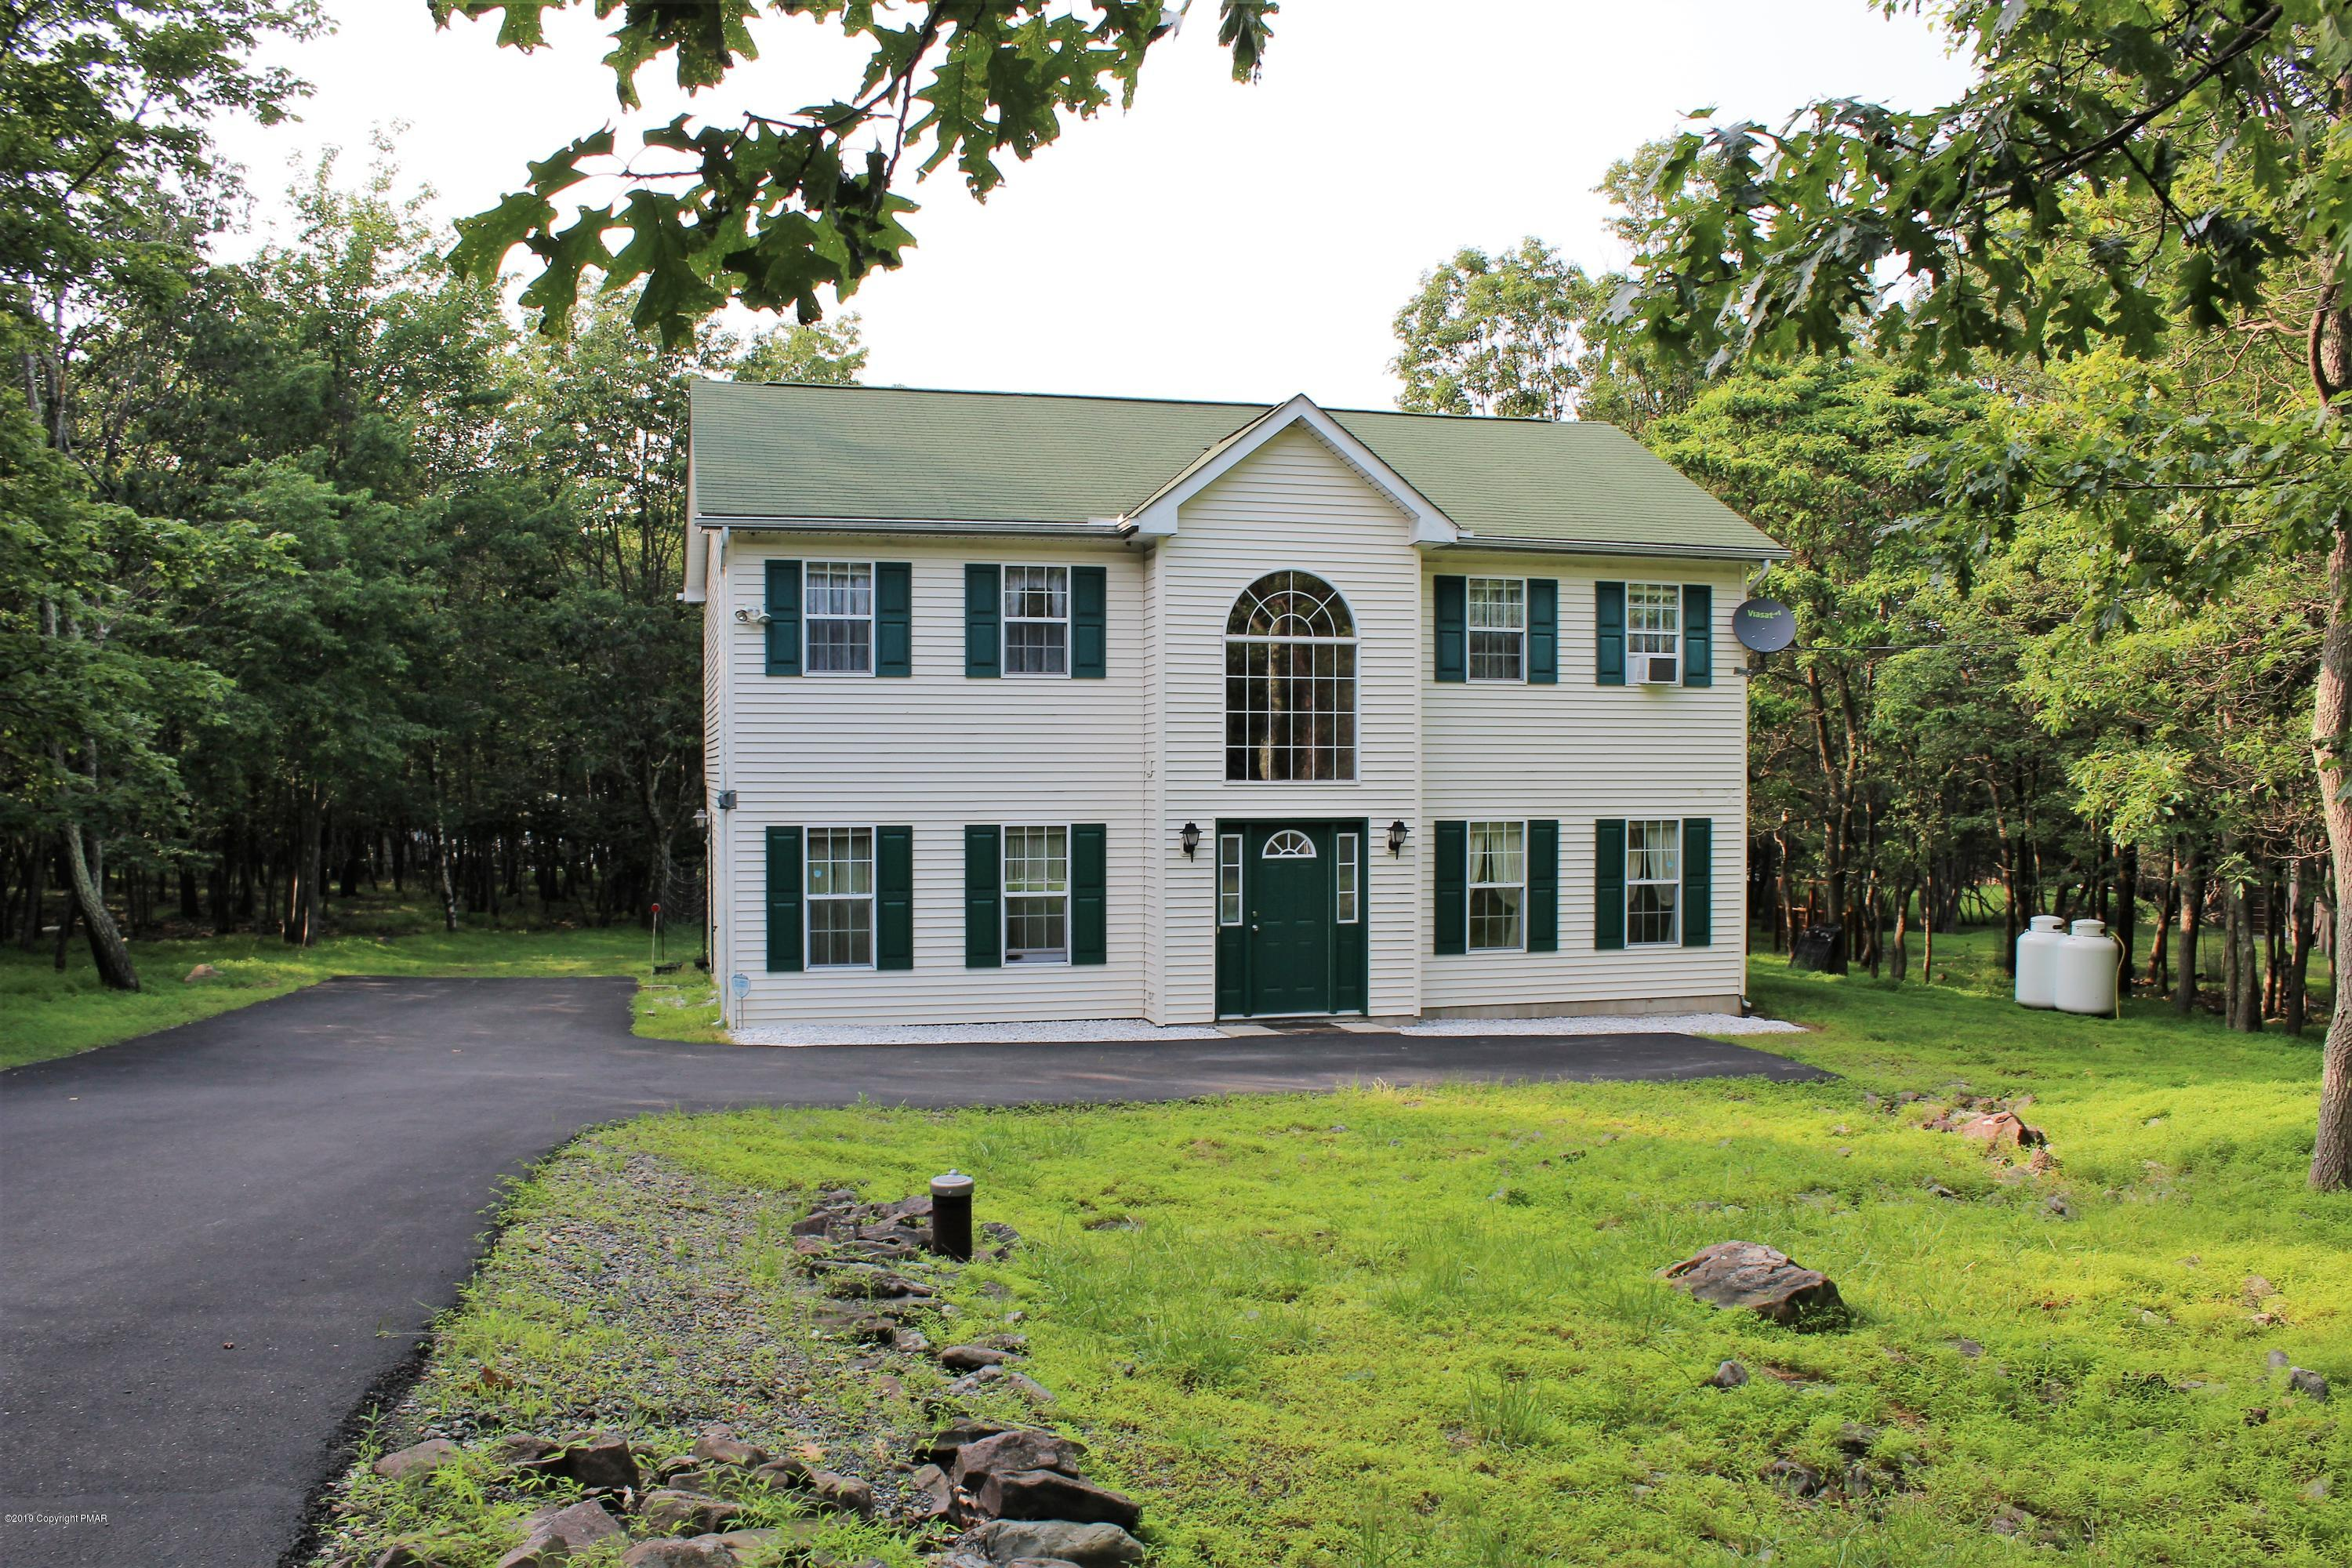 113 Clearbrook Dr, Albrightsville, PA 18210